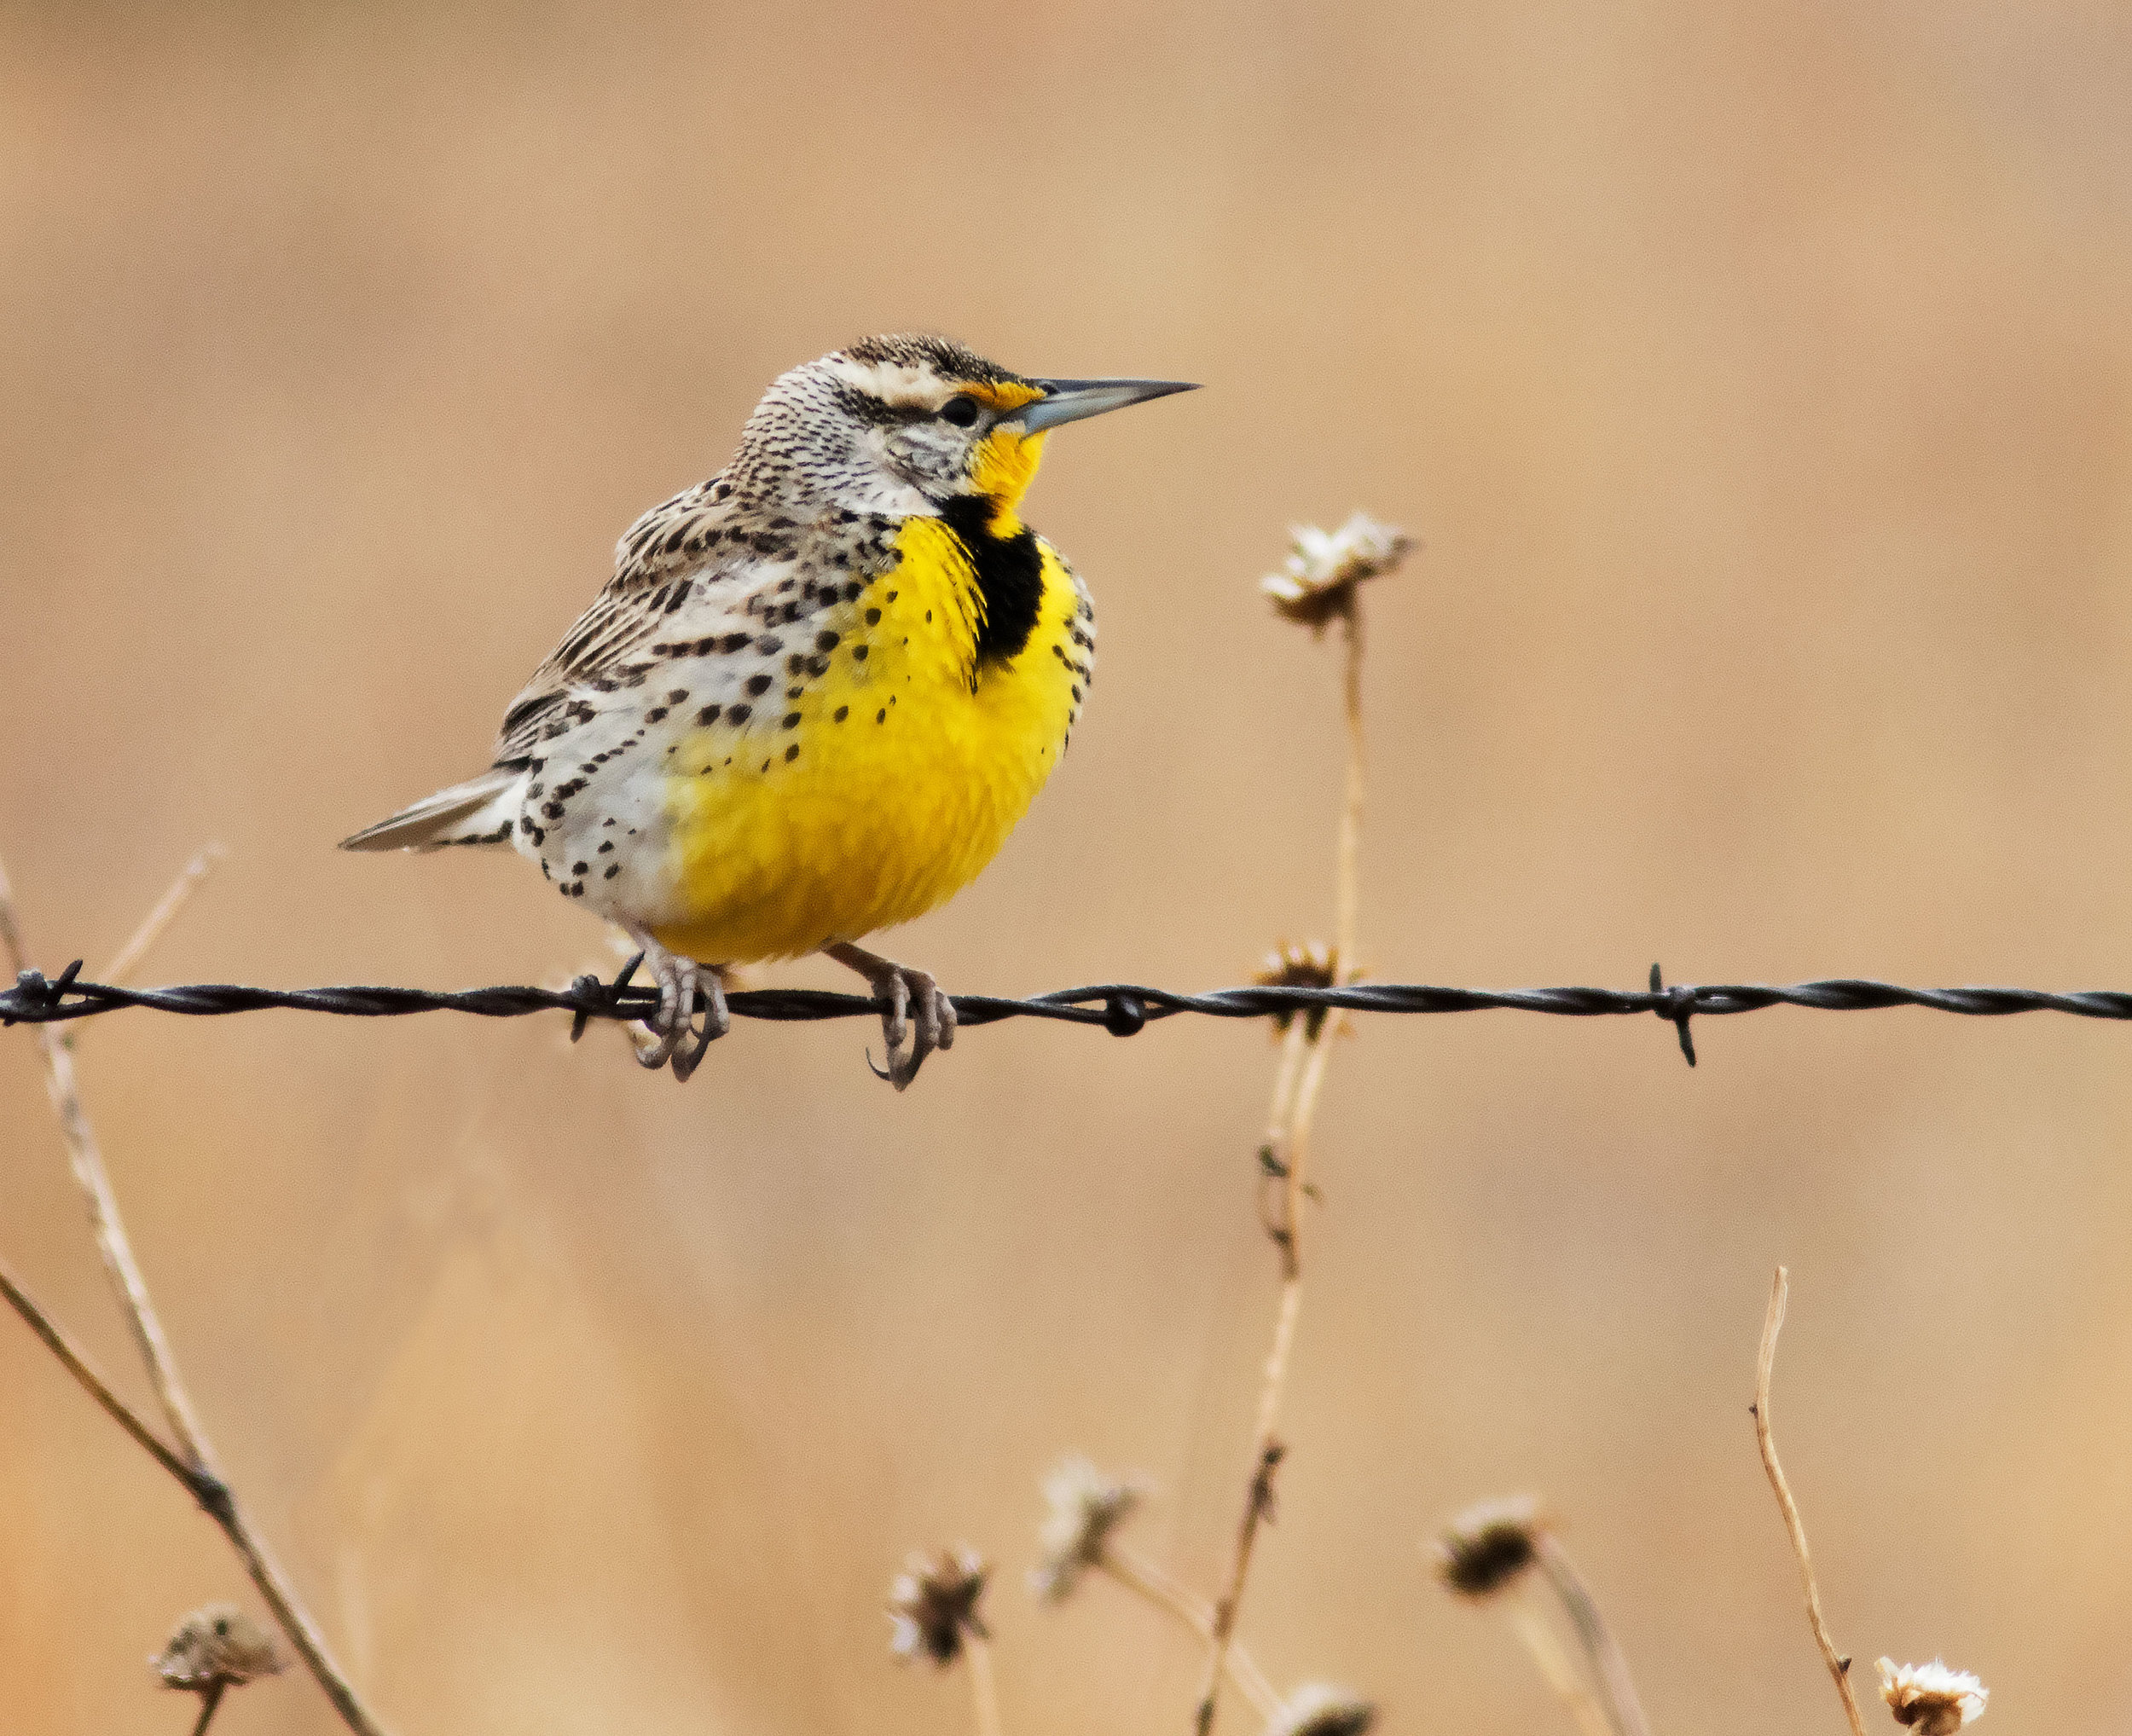 Western Meadowlark in the Nebraska Sandhills